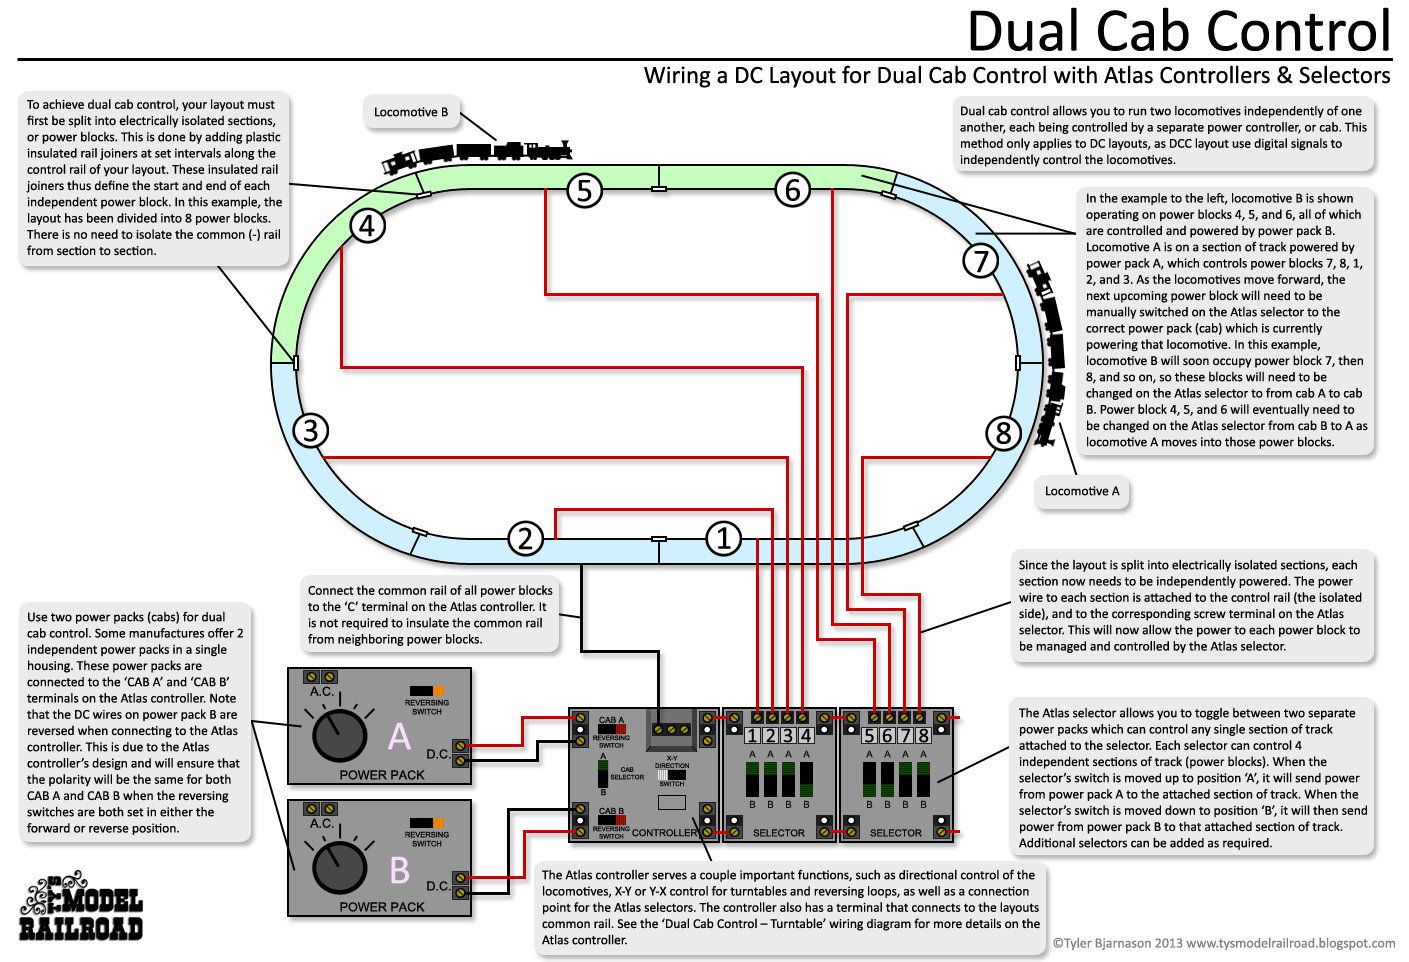 Ty's model railroad wiring diagrams Model Railroad DCC Wiring Model Railroad Track Diagrams HO DCC Wiring Basics on wiring model railroad track